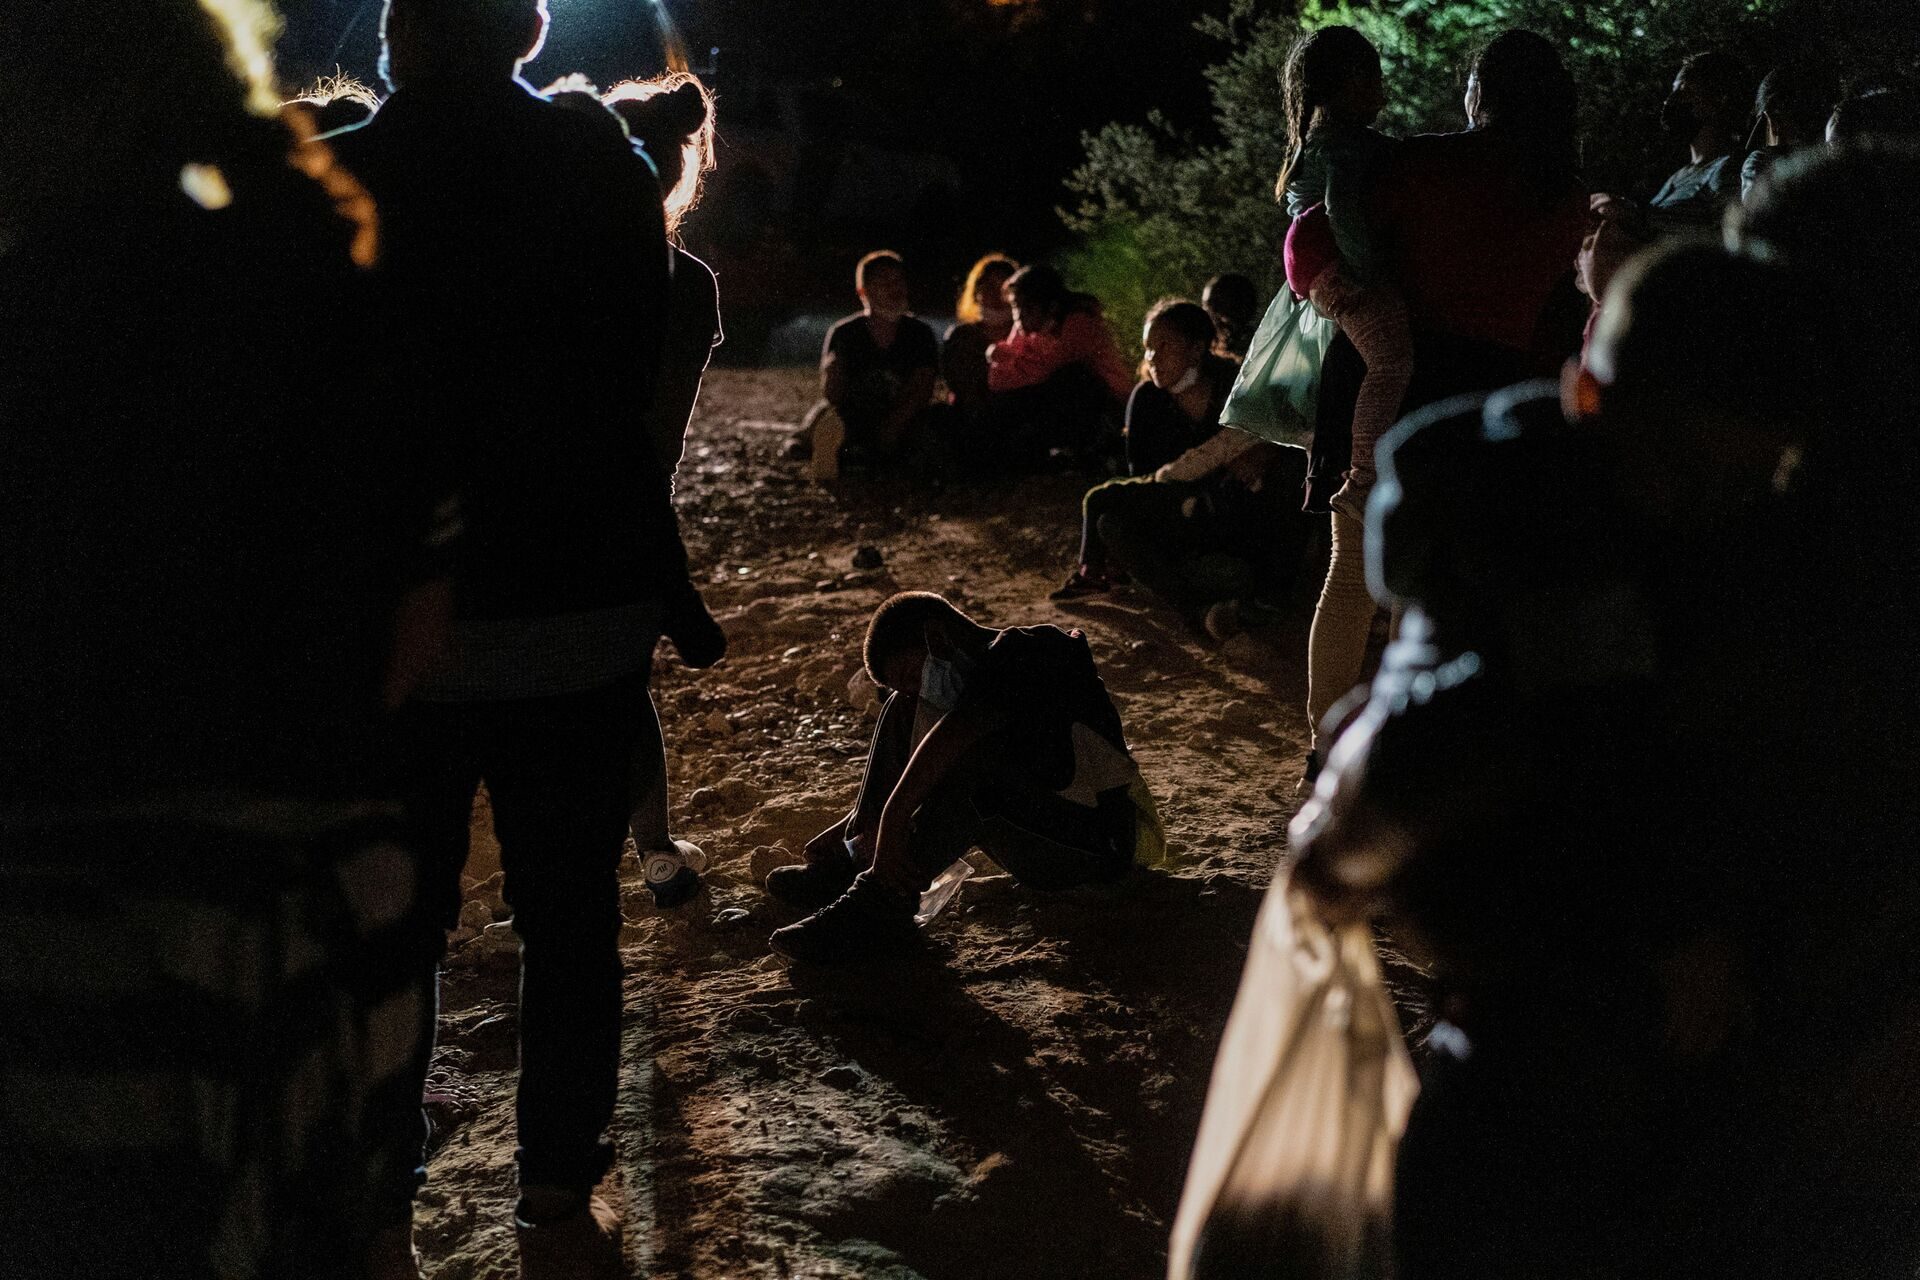 Asylum-seeking migrant families from Central America wait to be processed by the U.S. Border Patrol agents after crossing the Rio Grande river into the United States of America from Mexico in Roma, Texas, U.S., July 28, 2021. - Sputnik International, 1920, 07.09.2021